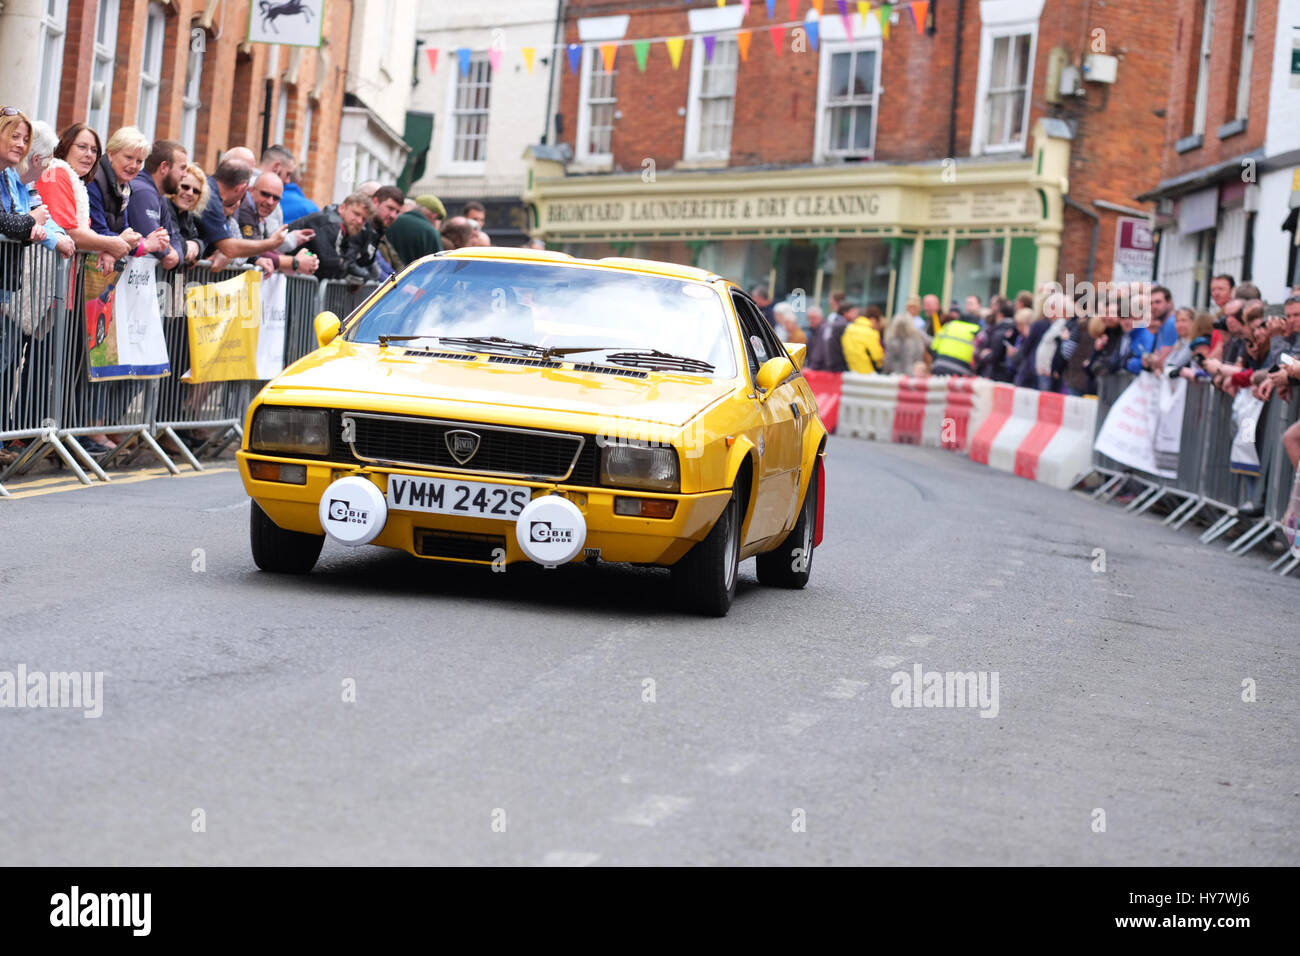 Bromyard Spped Festival, Herefordshire, UK - Sunday 2nd April 2017 - Vintage and classic cars roar through the town - Stock Image